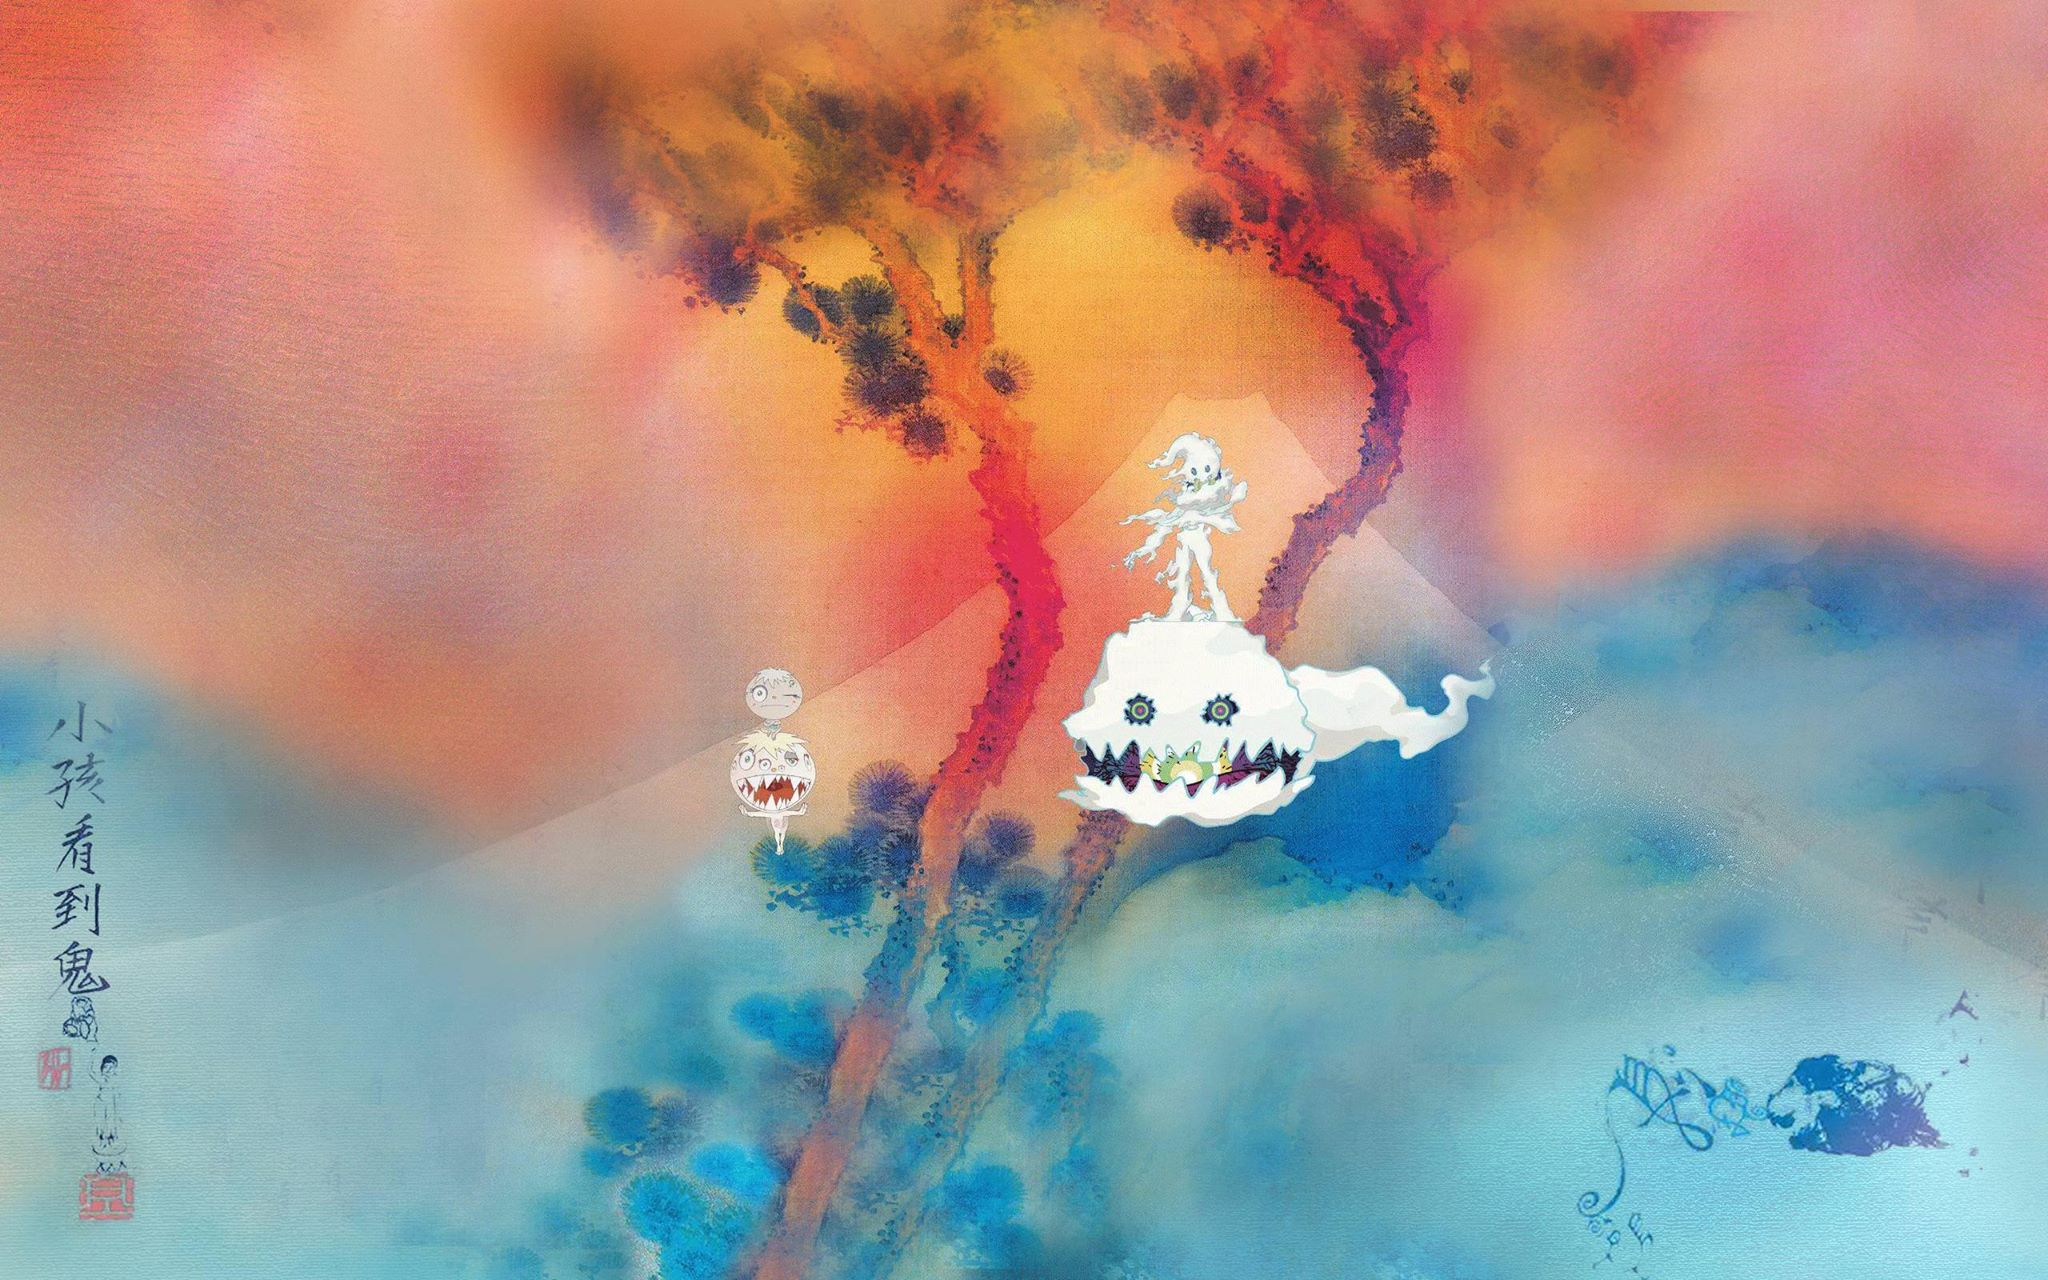 Capa de Kids See Ghosts, de Kanye West e Kid Cudi.